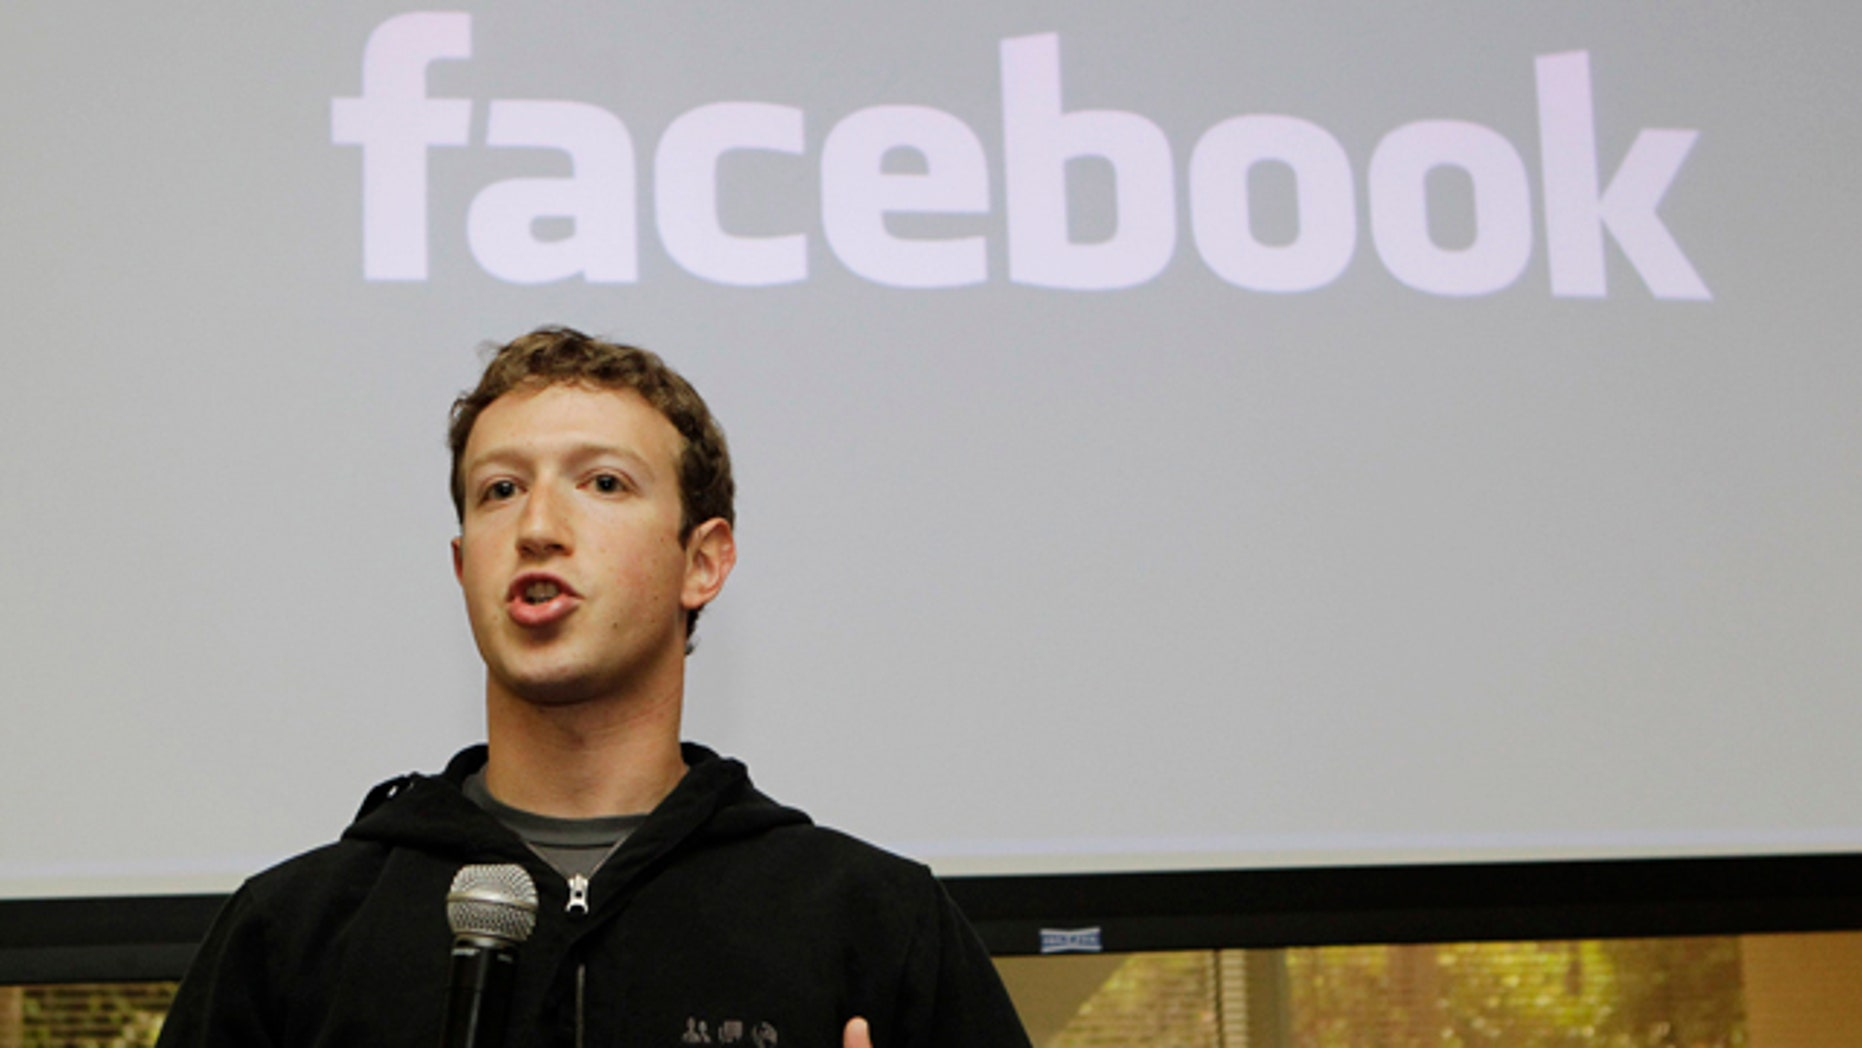 FILE - In this May, 26, 2010 file photo, Facebook CEO Mark Zuckerberg talks about the social network site's new privacy settings in Palo Alto, Calif.